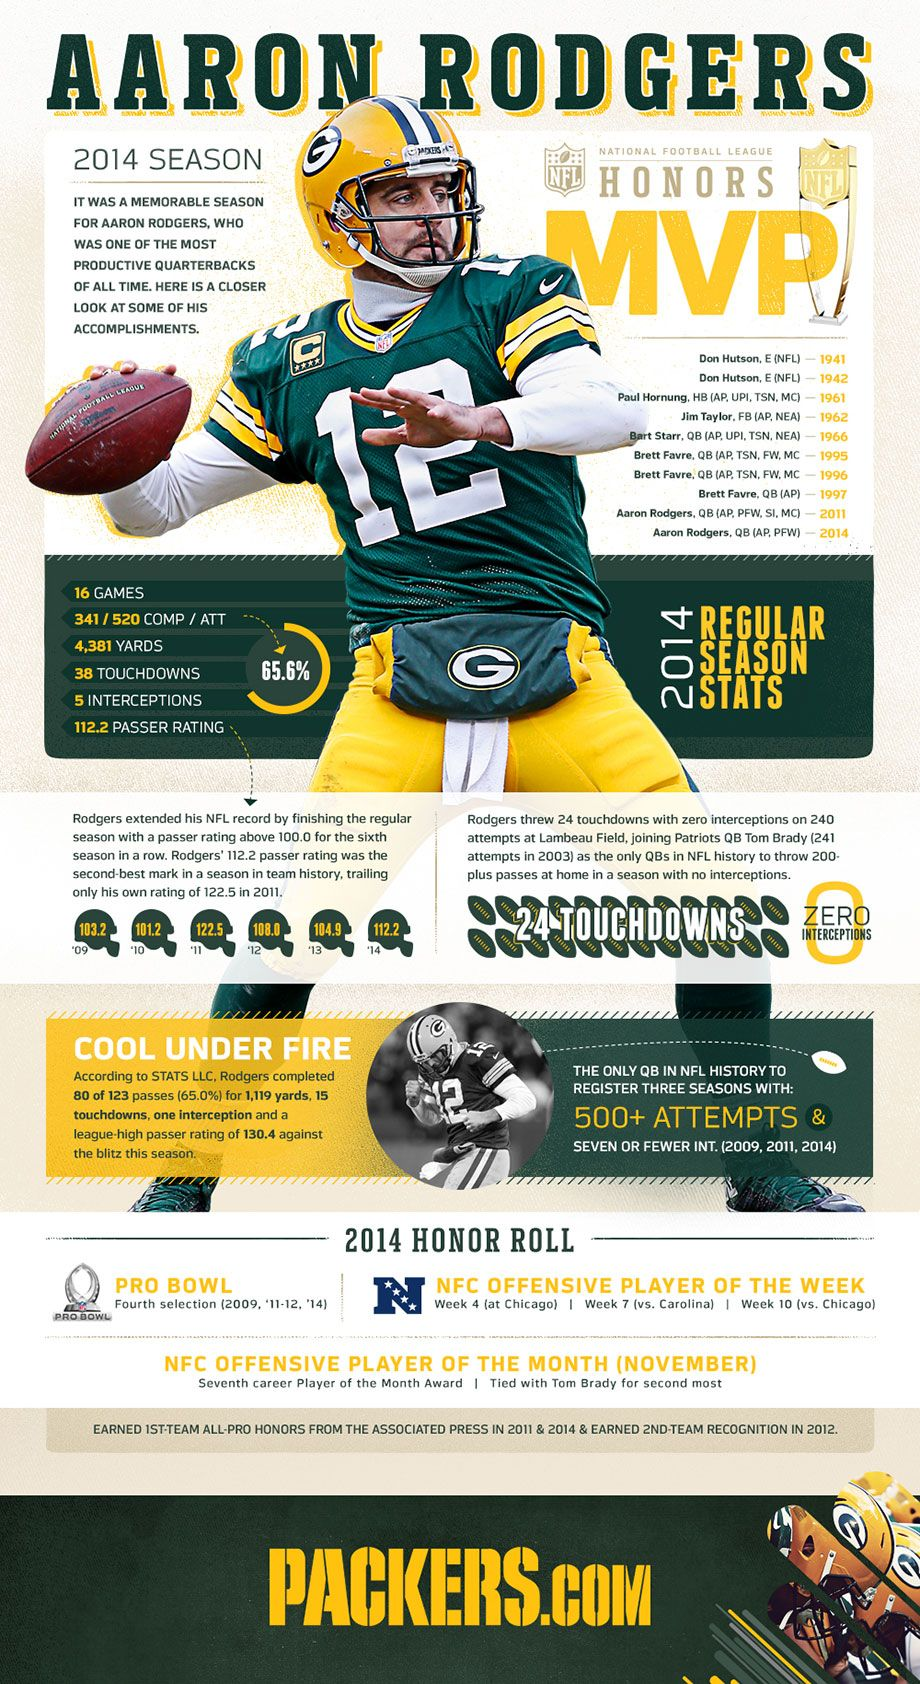 Pin By Cynthia O On Go ᑭᗩᑕk Go Aaron Rodgers Nfl Green Bay Aaron Rodgers Stats